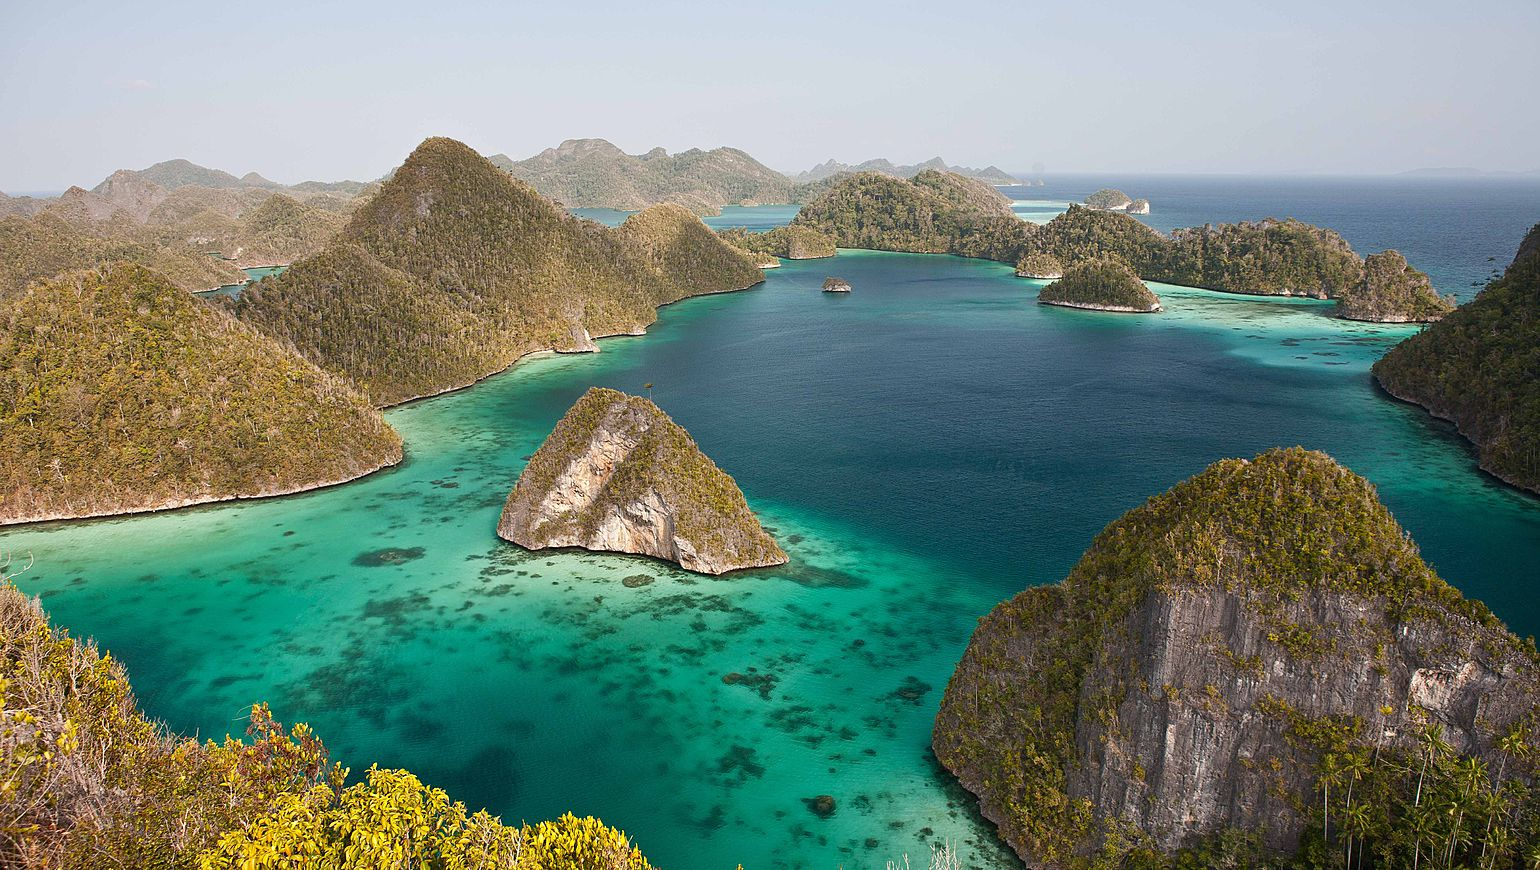 ULTIMO PARADISO IN VELIERO NELL146ARCIPELAGO DI RAJA AMPAT - National geographic expeditions